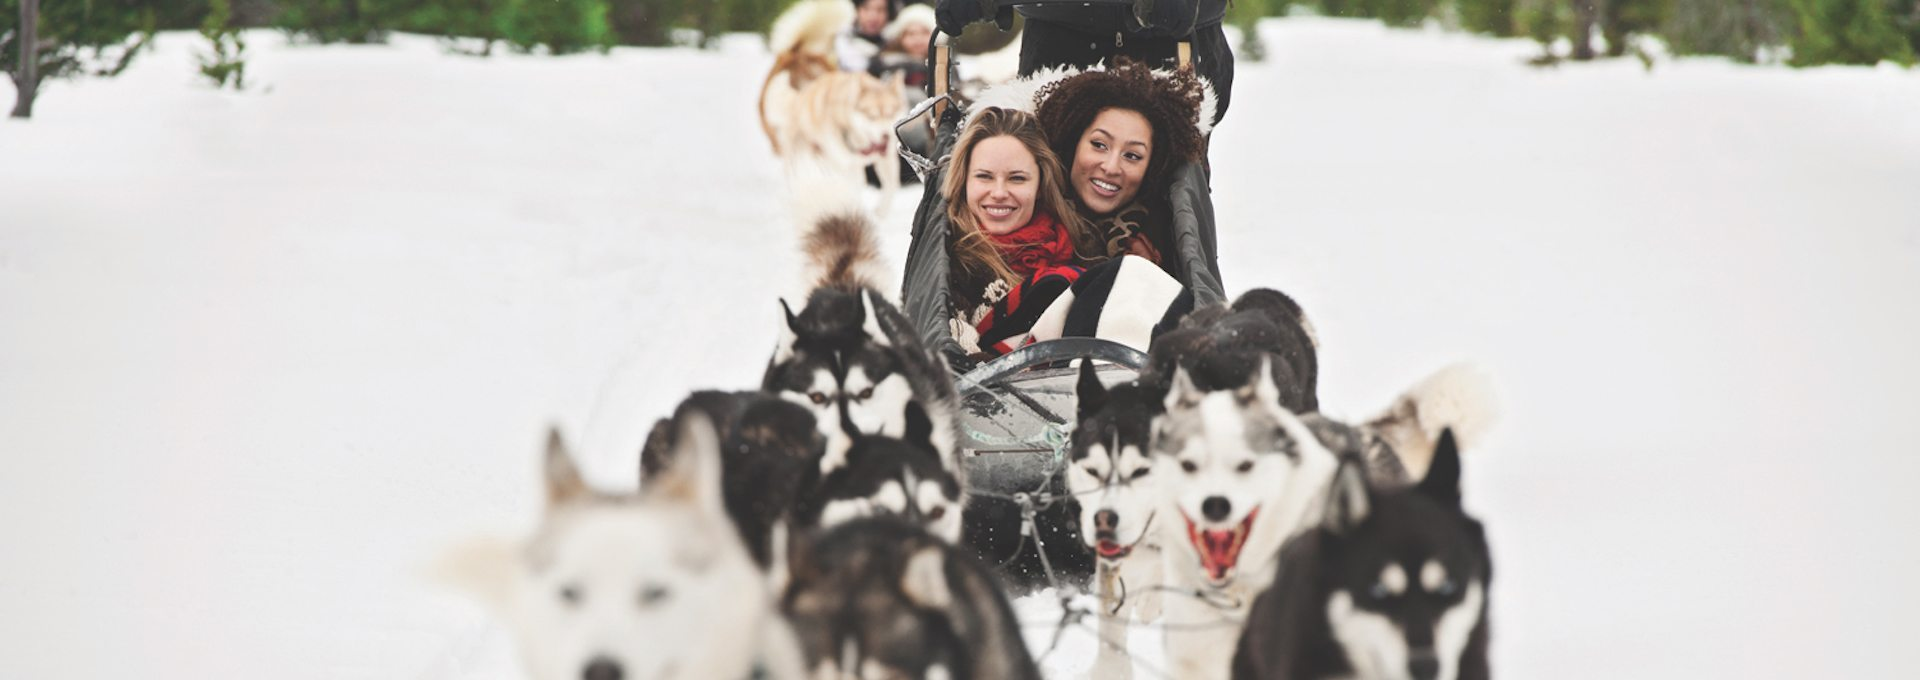 Dogsledding – Powder Hound